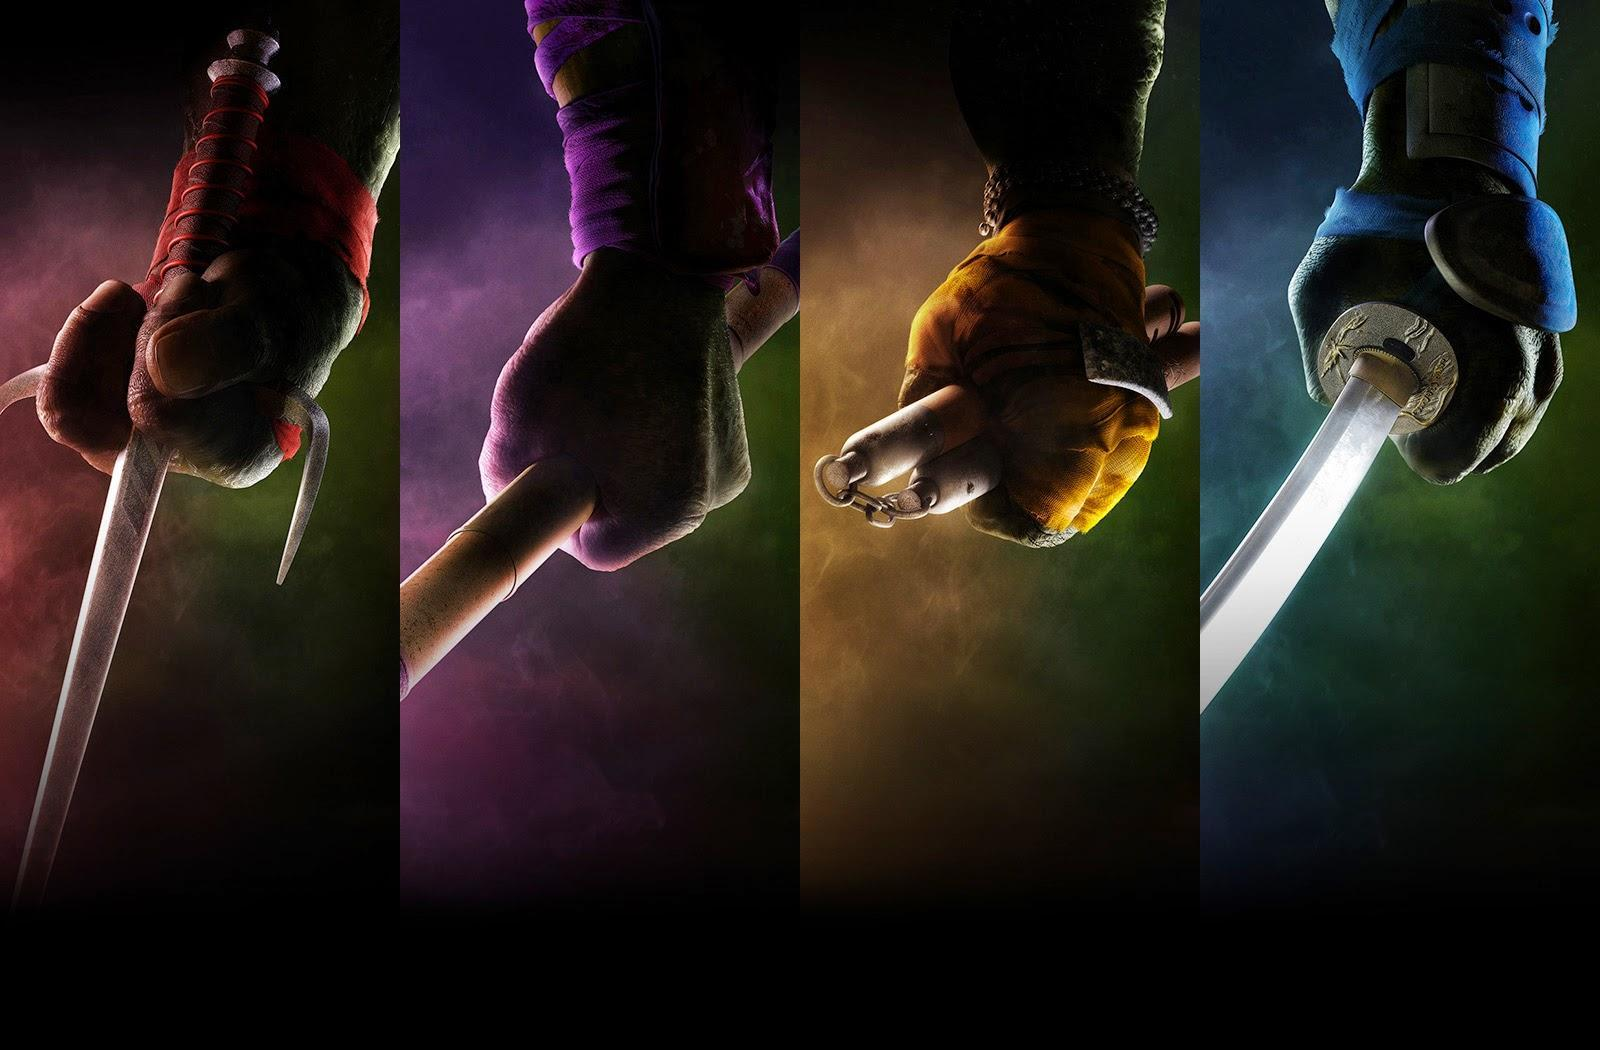 Which Teenage Mutant Ninja Turtle Is Your Favorite?